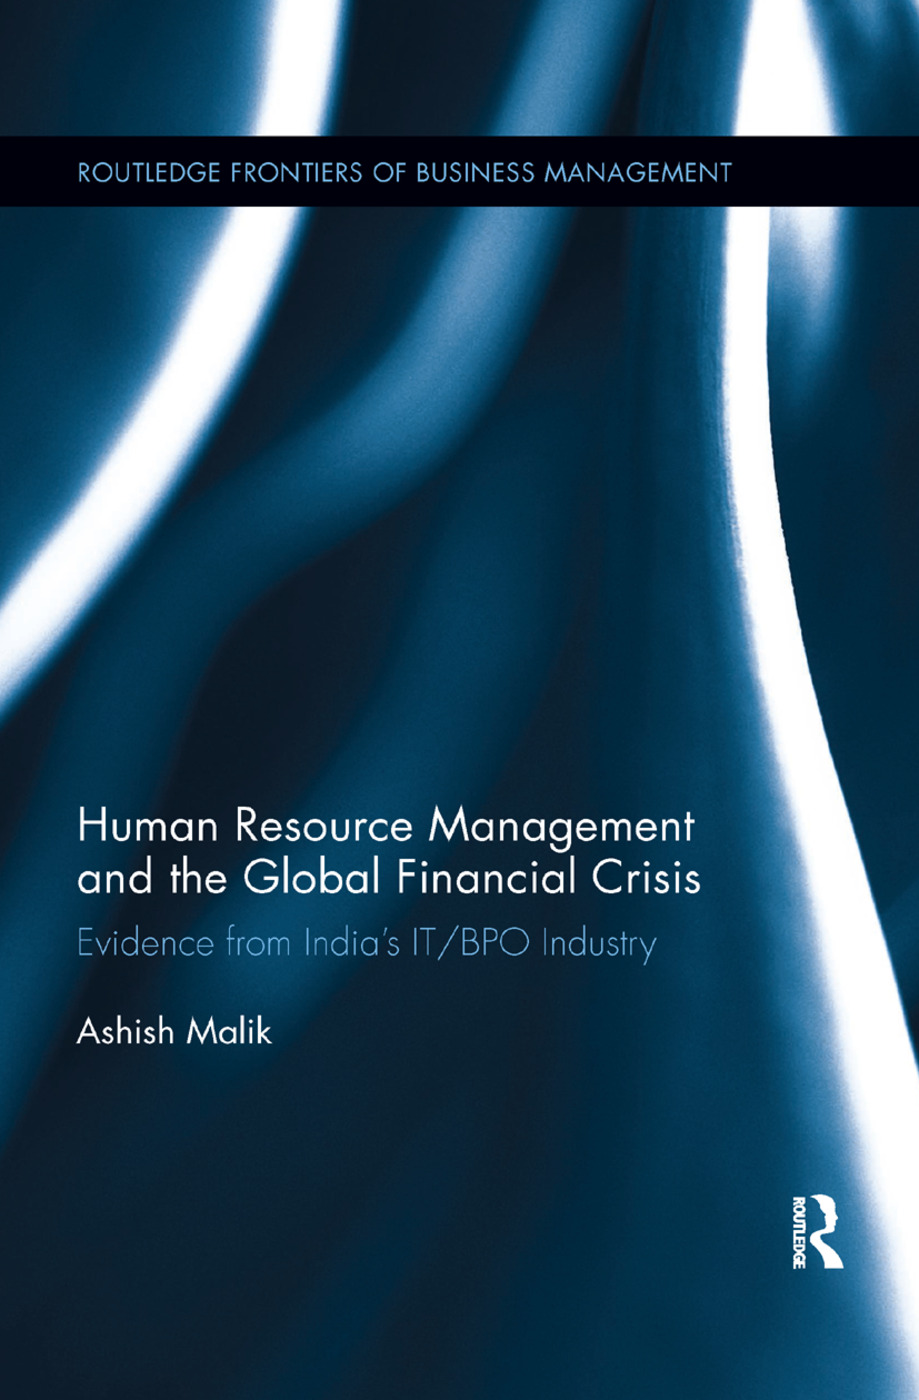 Human Resource Management and the Global Financial Crisis: Evidence from India's IT/BPO Industry book cover